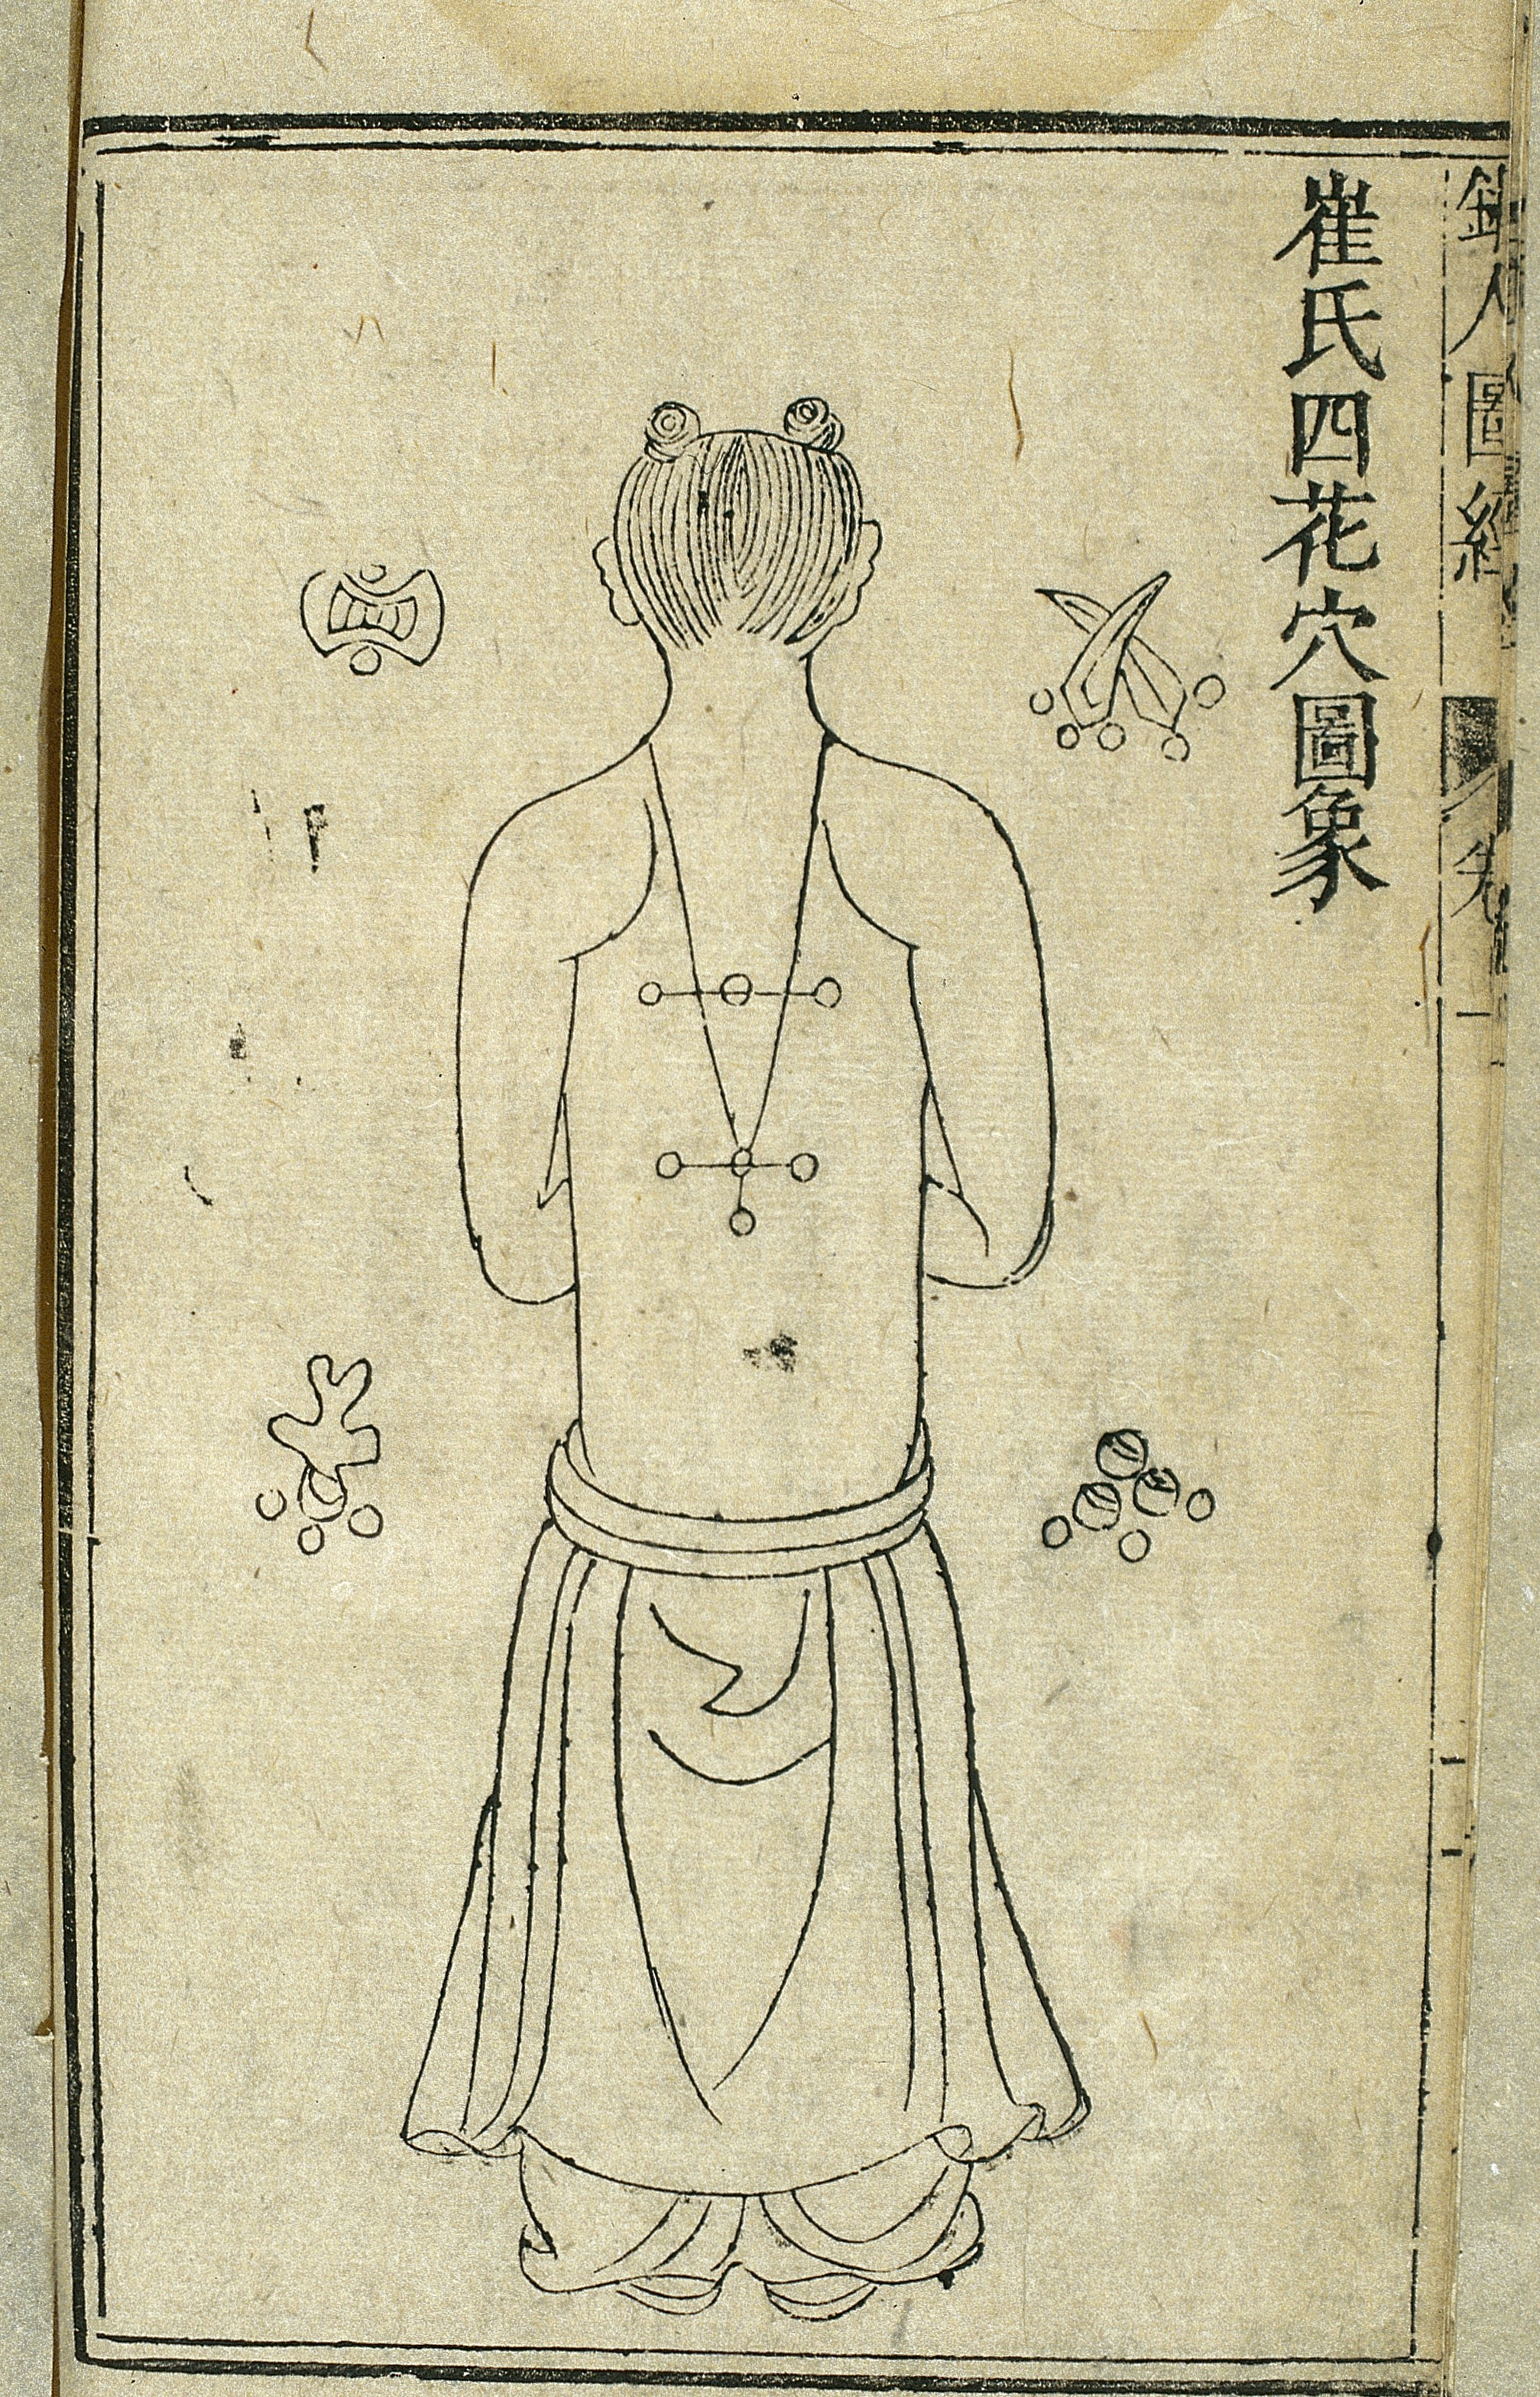 File:Location of the Four Flower Points, Chinese woodcut, 1443' Wellcome  L0034734